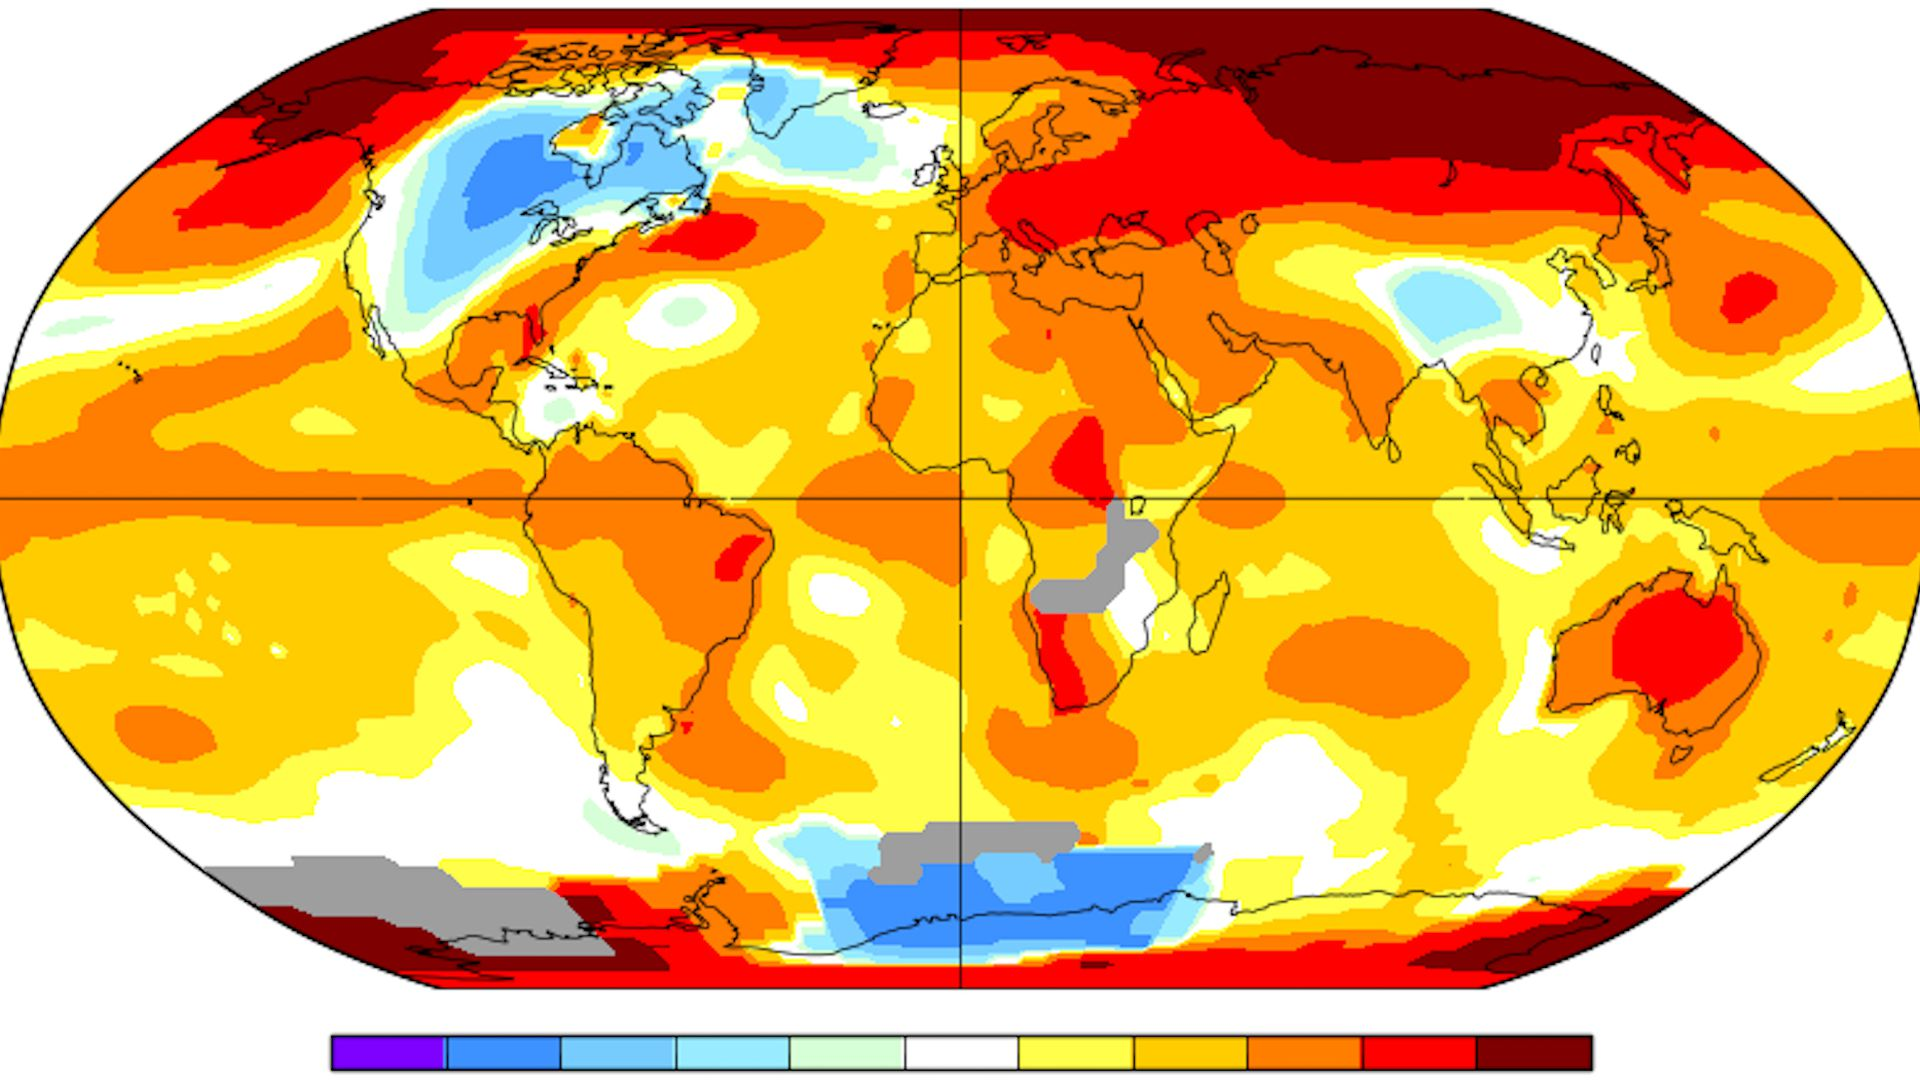 Global average surface temperature anomalies in Oct. 2018 compared to 1951-1980 average.